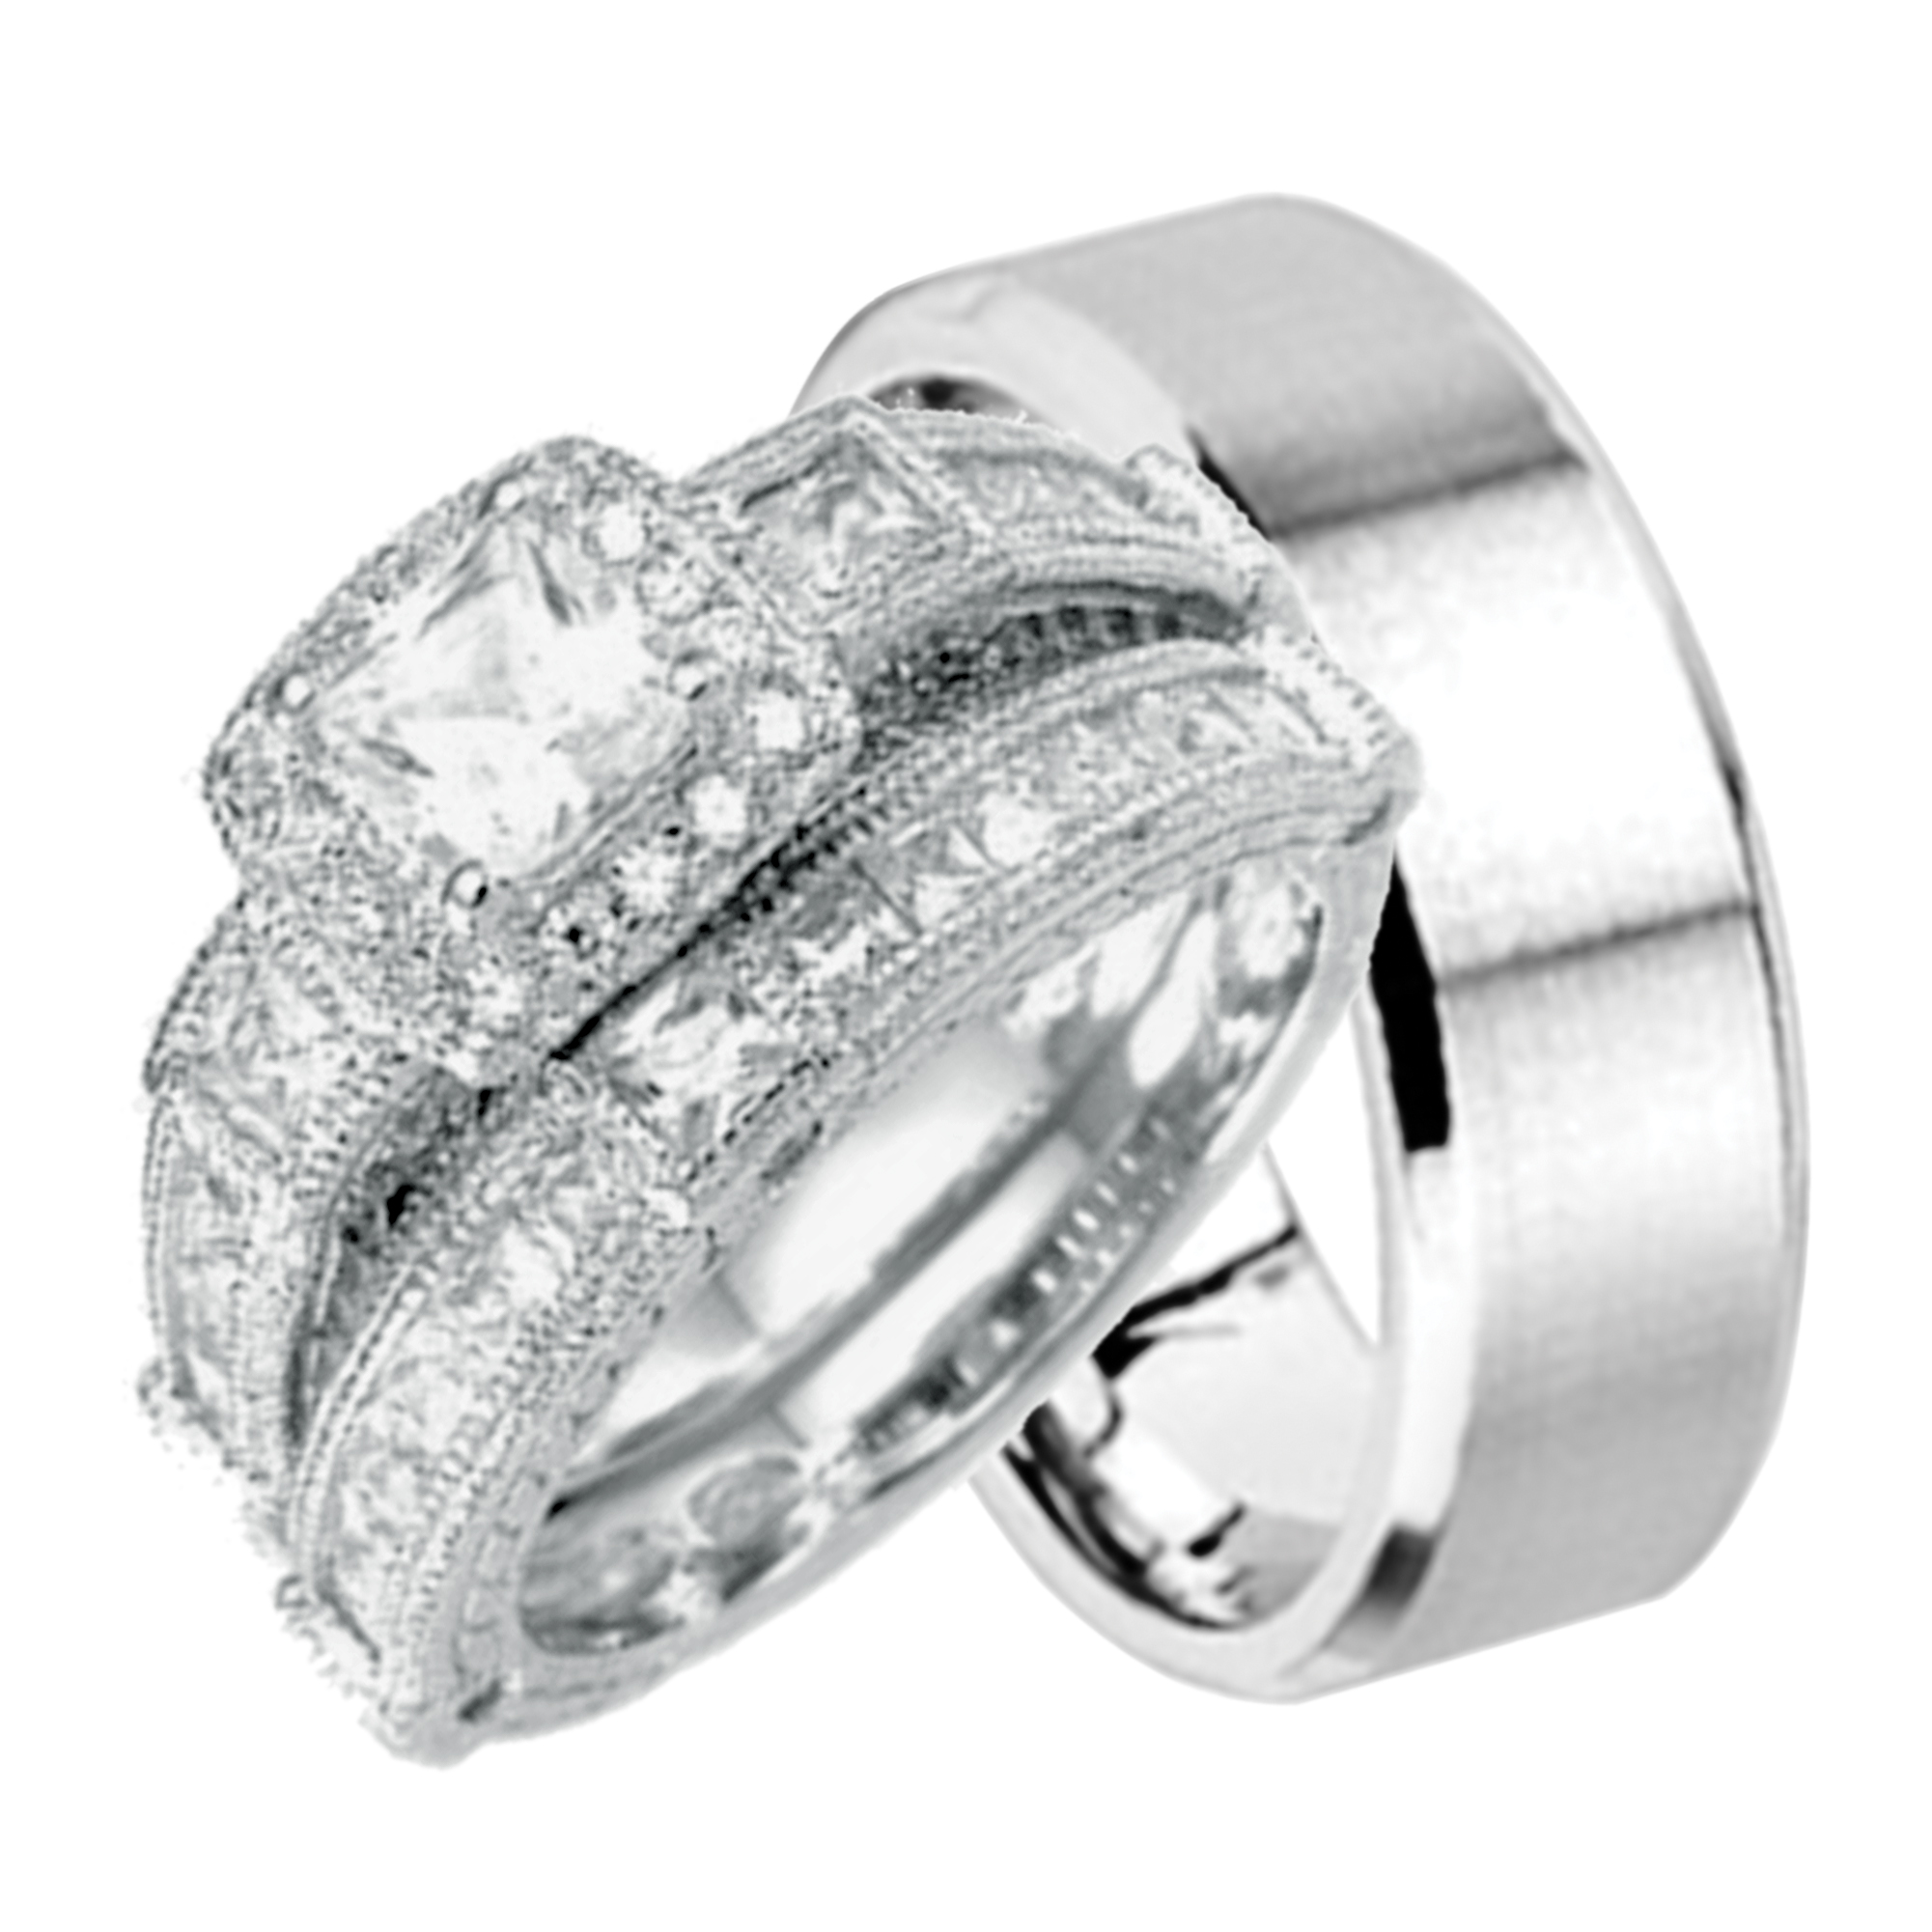 affordable com his within hers rings jewelers matvuk cheap kay incredible wedding wonderful bands and matching